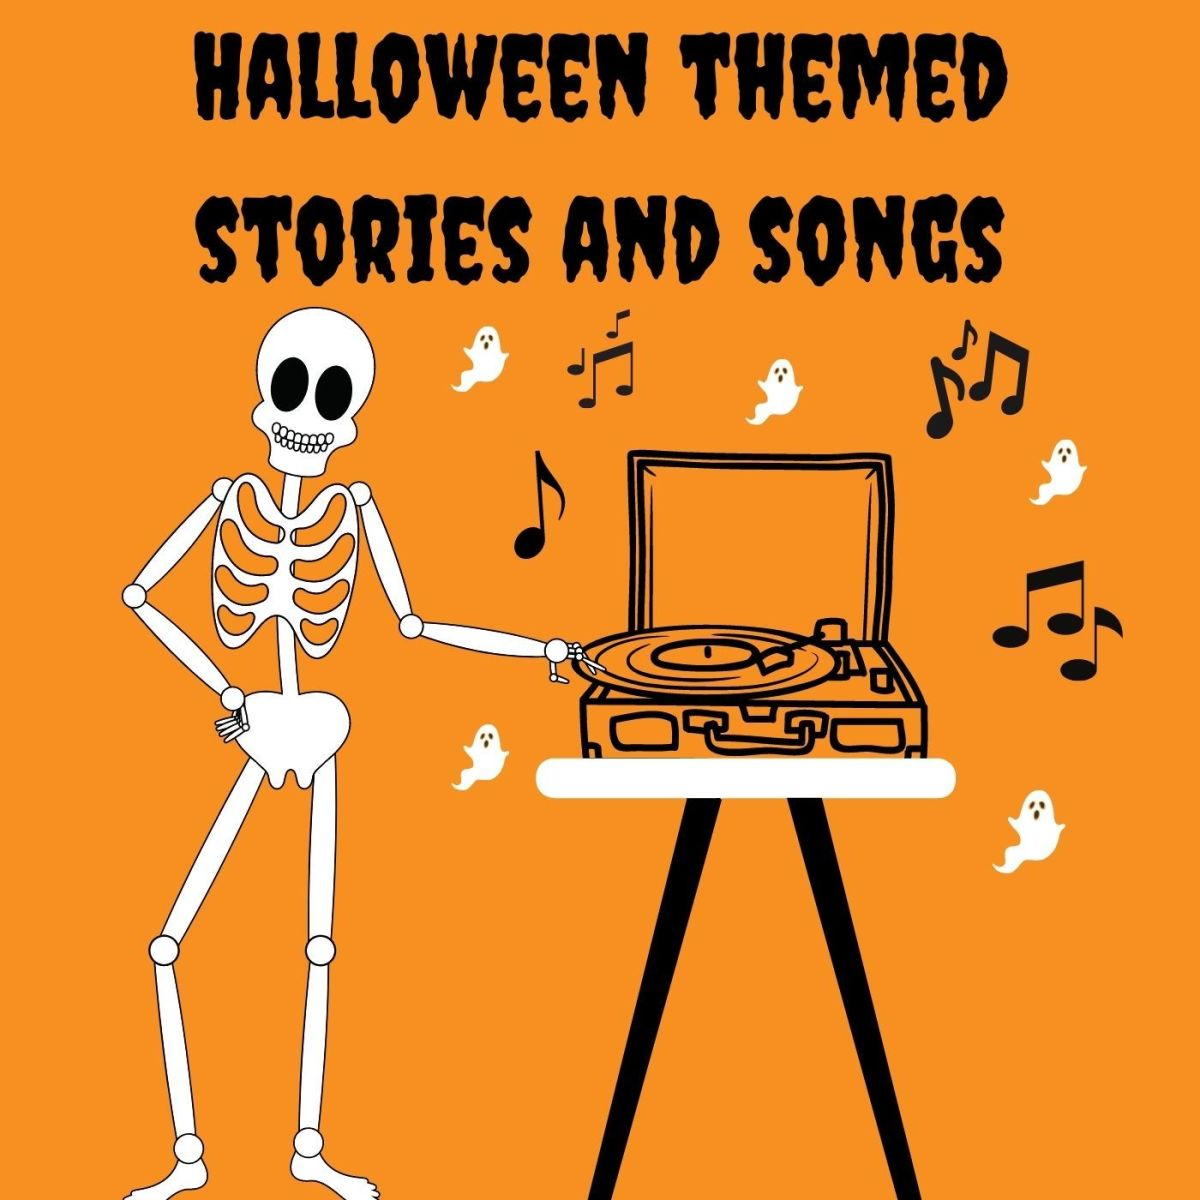 Need some tunes to play at your spooky Halloween party? Look no further!